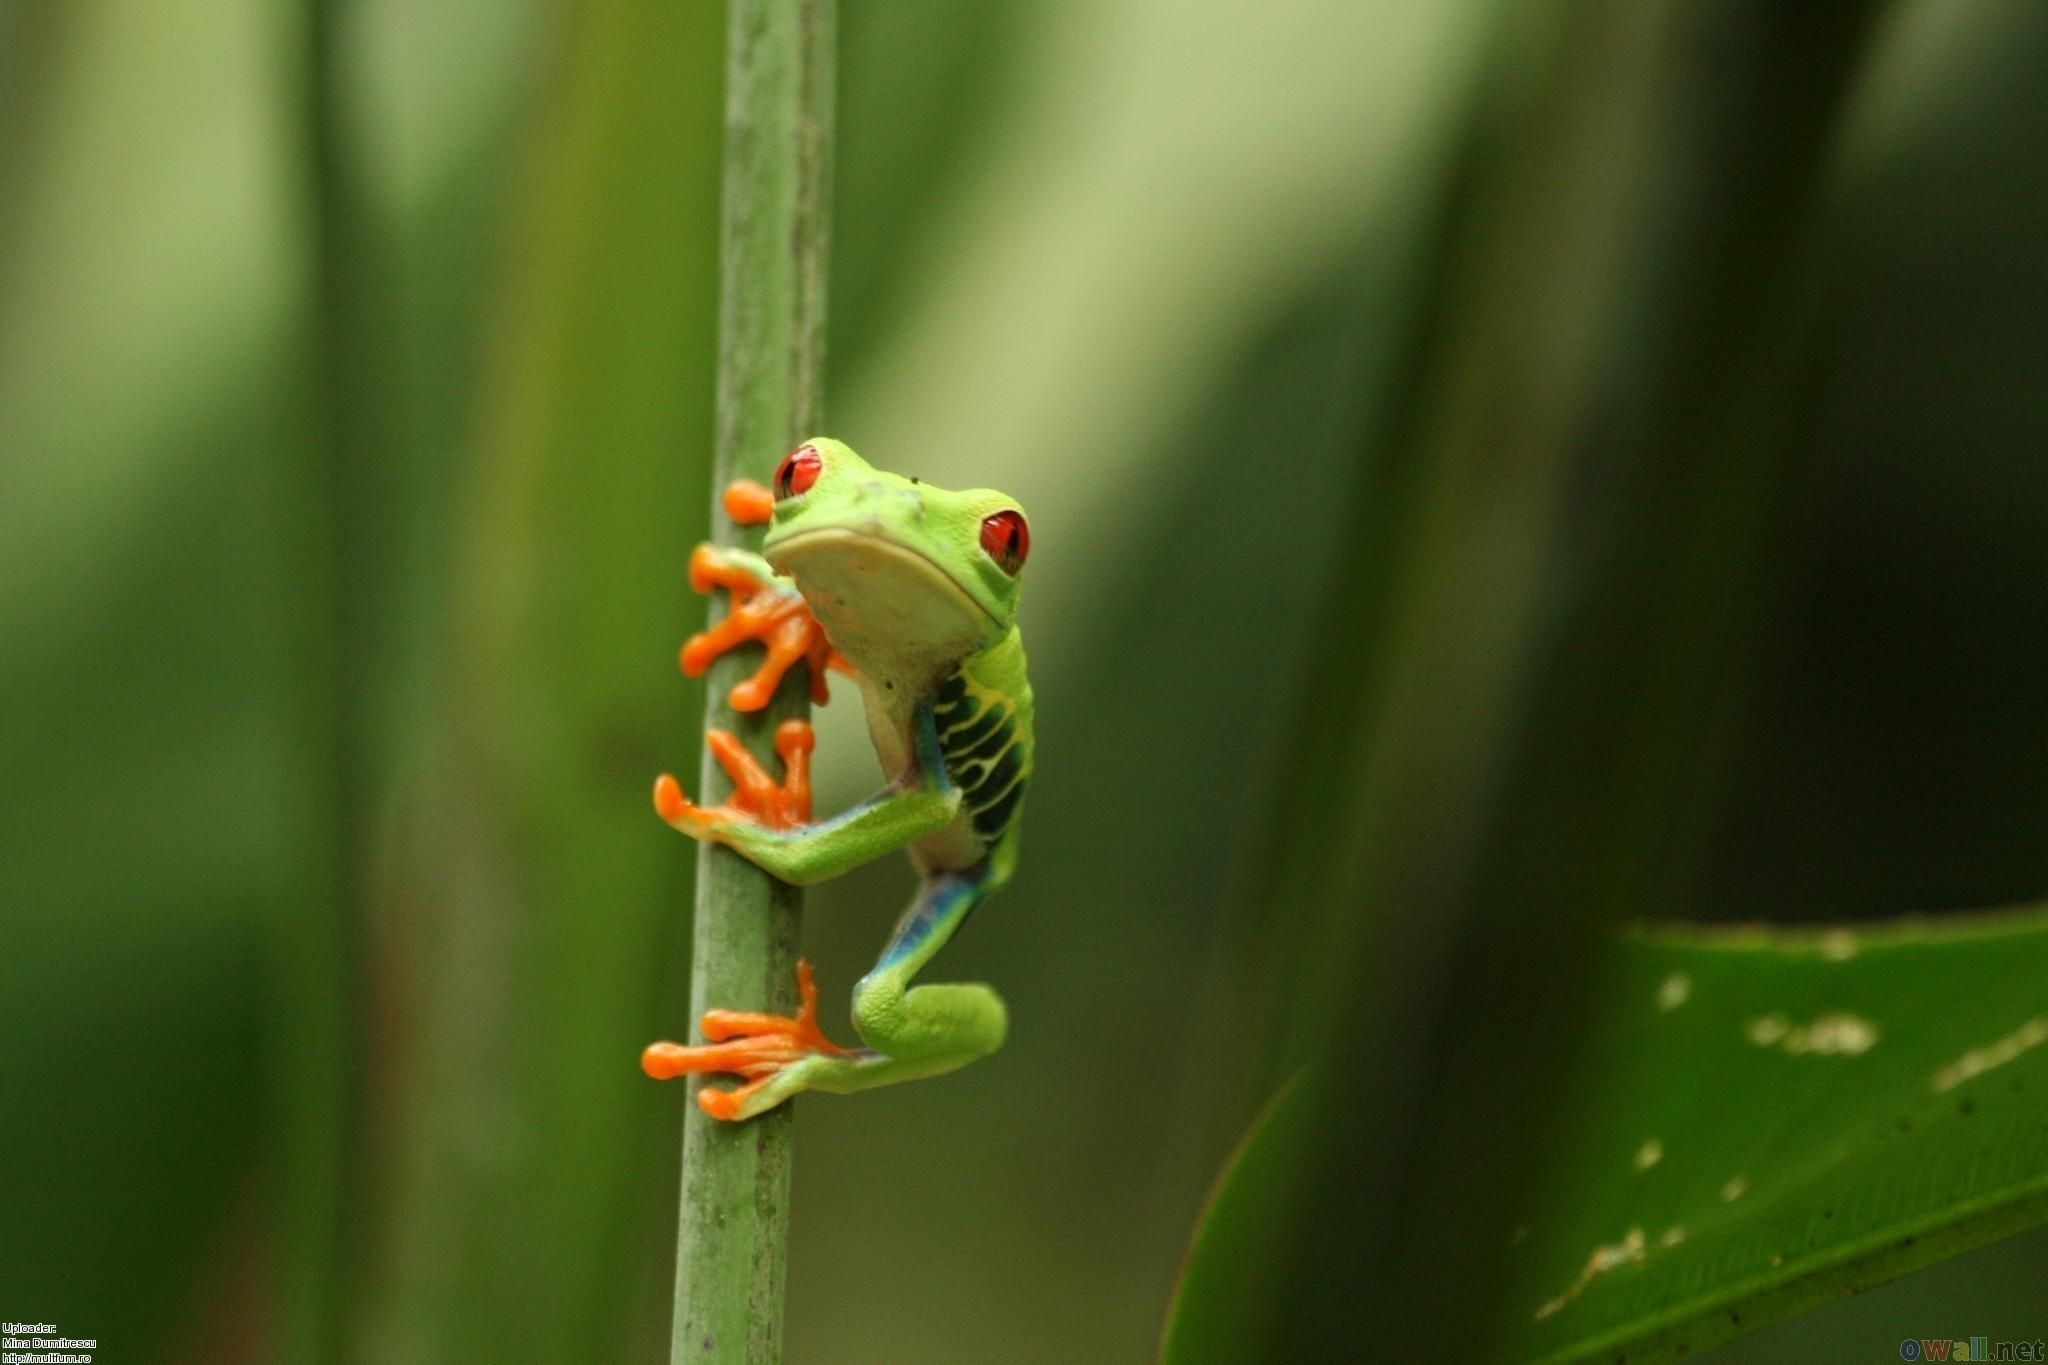 Res: 2048x1365, HD Frog Wallpaper 2048×1365 Frog Wallpaper (58 Wallpapers) | Adorable  Wallpapers